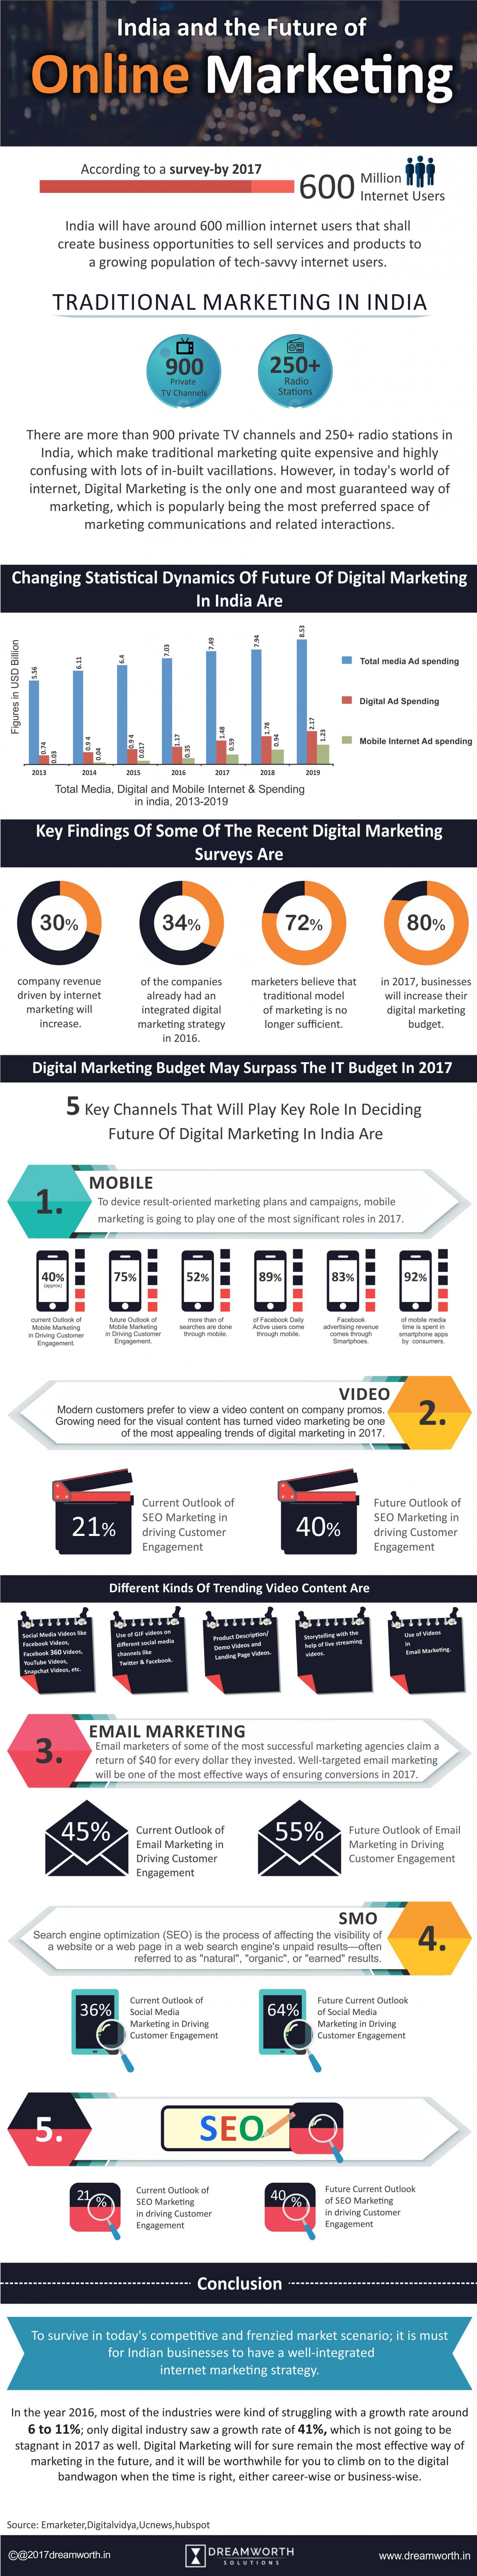 India and the Future of Online Marketing Infographic